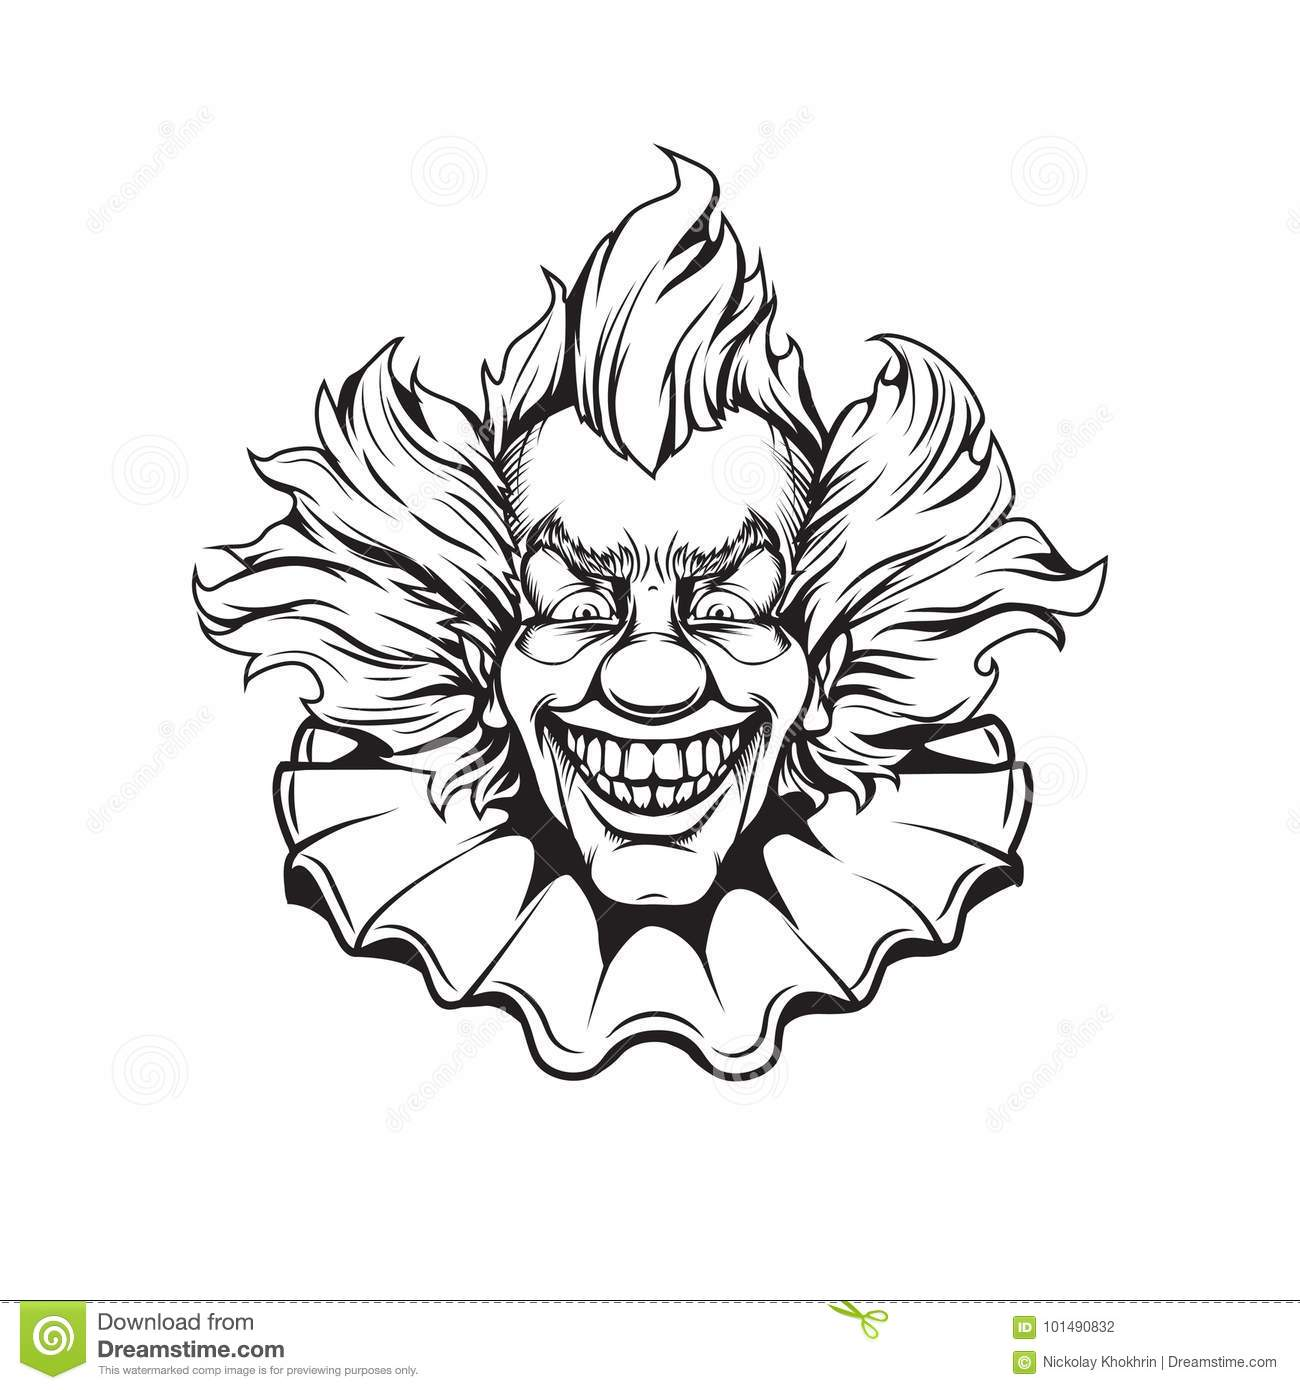 Scary Clown Coloring Pages Printable Skull Coloring Pages